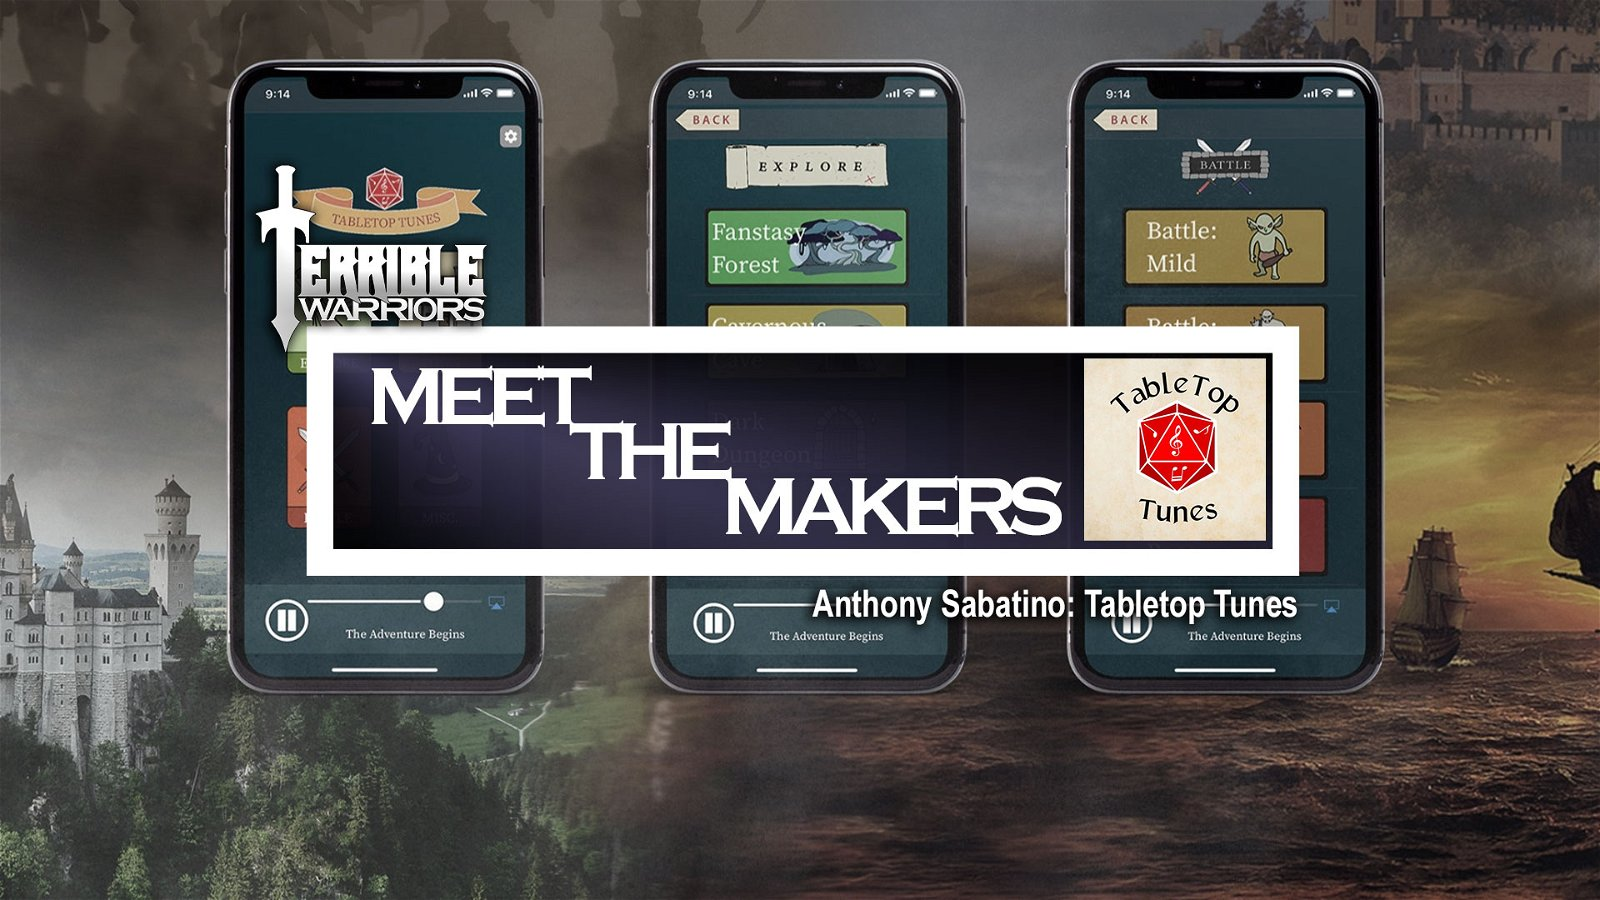 Terrible Warriors - Meet The Makers: Anthony Sabatino (Tabletop Tunes)